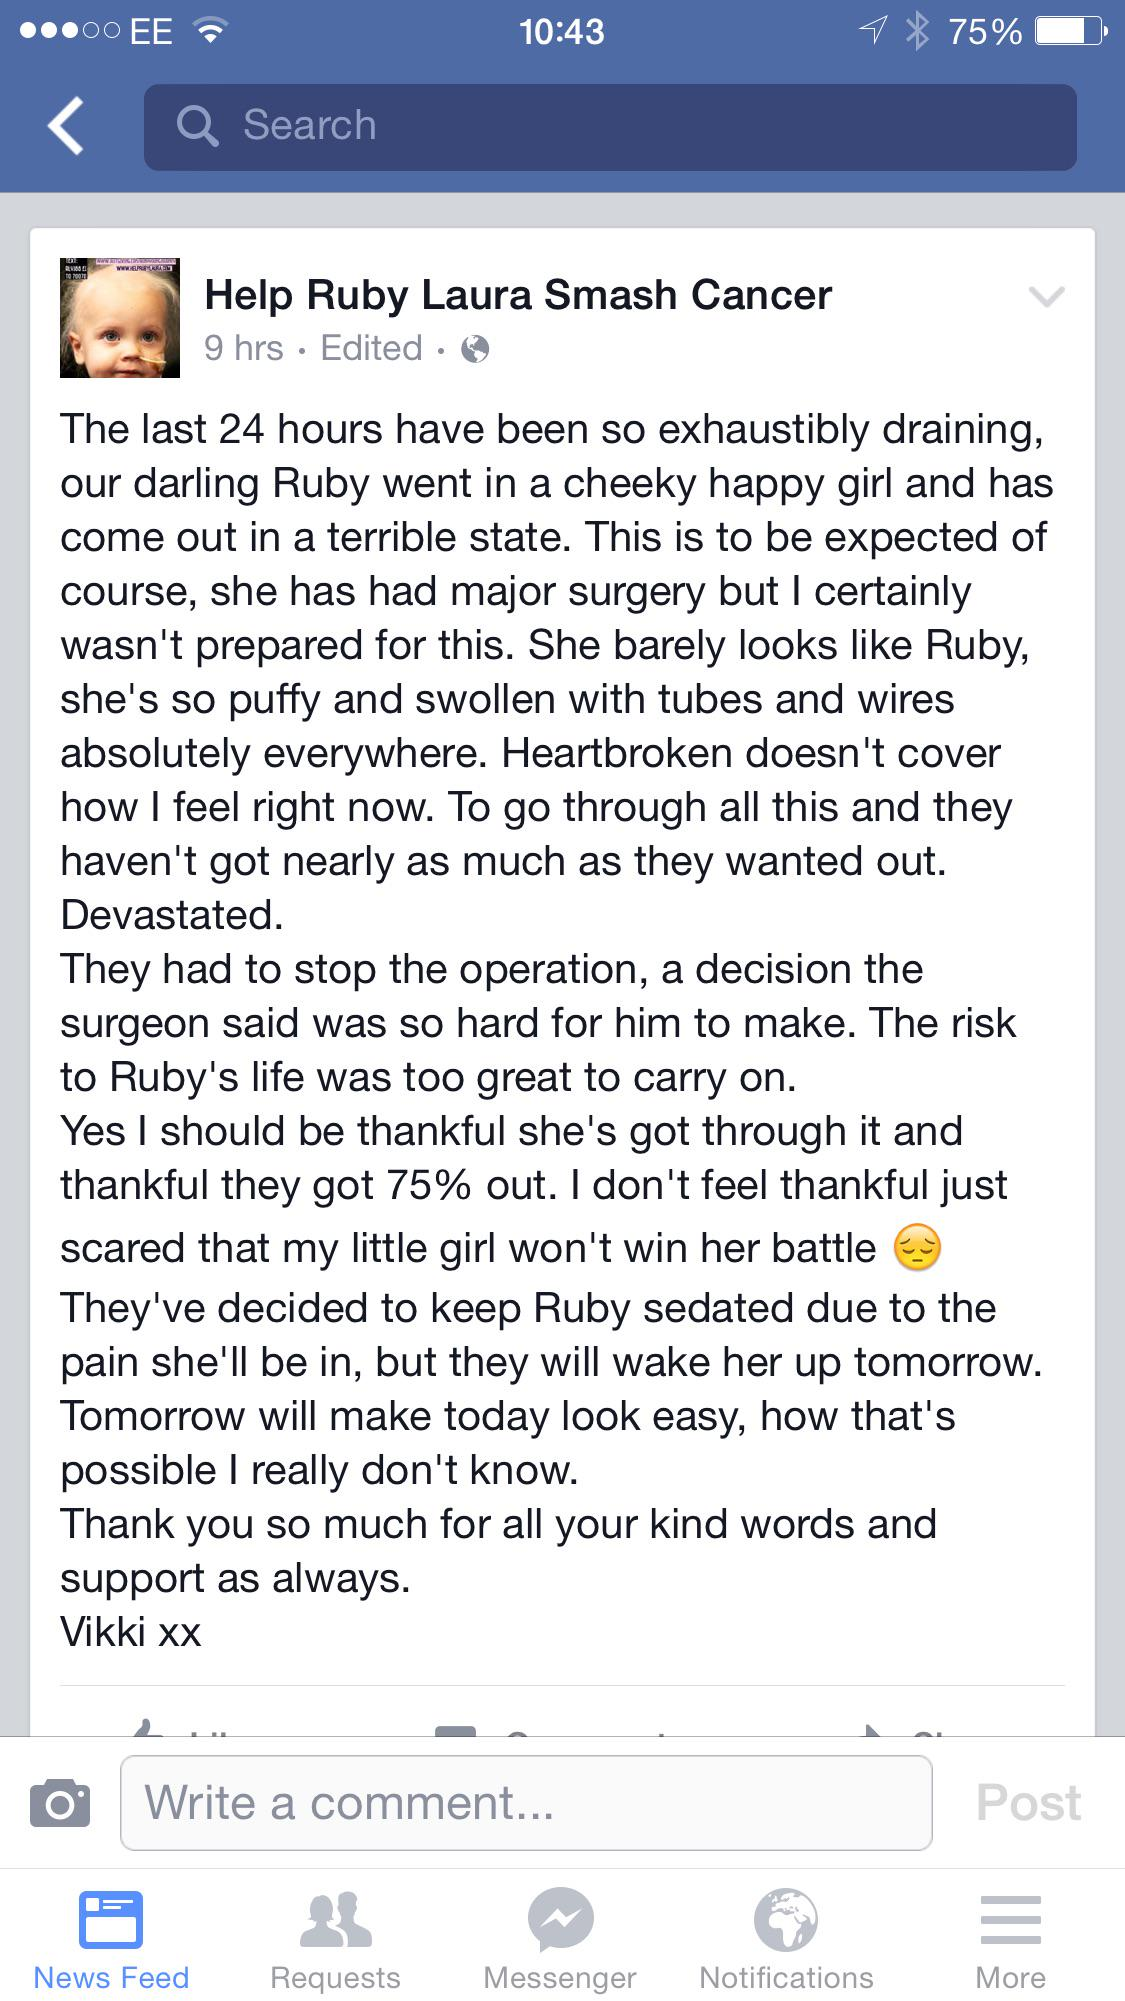 Give Ruby's Mum & Dad a boost today pleaseeeeeee !!!!! Even just £1 helps http://t.co/lSYo5BXoOv